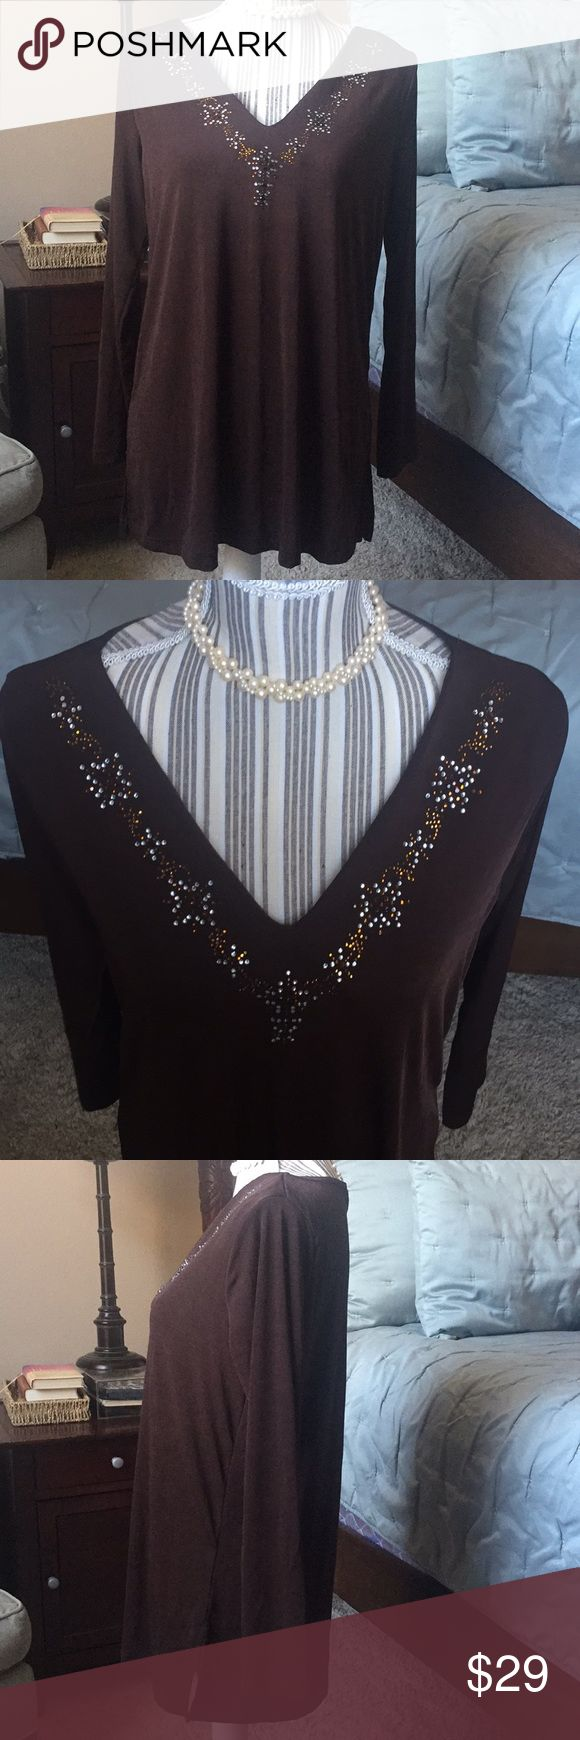 Gorgeous brown tunic with jeweled neckline This is a gorgeous piece that is subtle yet absolutely stunning at the same time. This would go well with jeans or a nice skirt or slacks. It's a very well-rounded versatile piece. Beautiful for a holiday party or just for every day wear. Great for layering warmth under a winter jacket. Used but great condition. Small. By Carolyn Strauss Collection. Pearl necklace not included. Carolyn Strauss Collection Tops Tunics